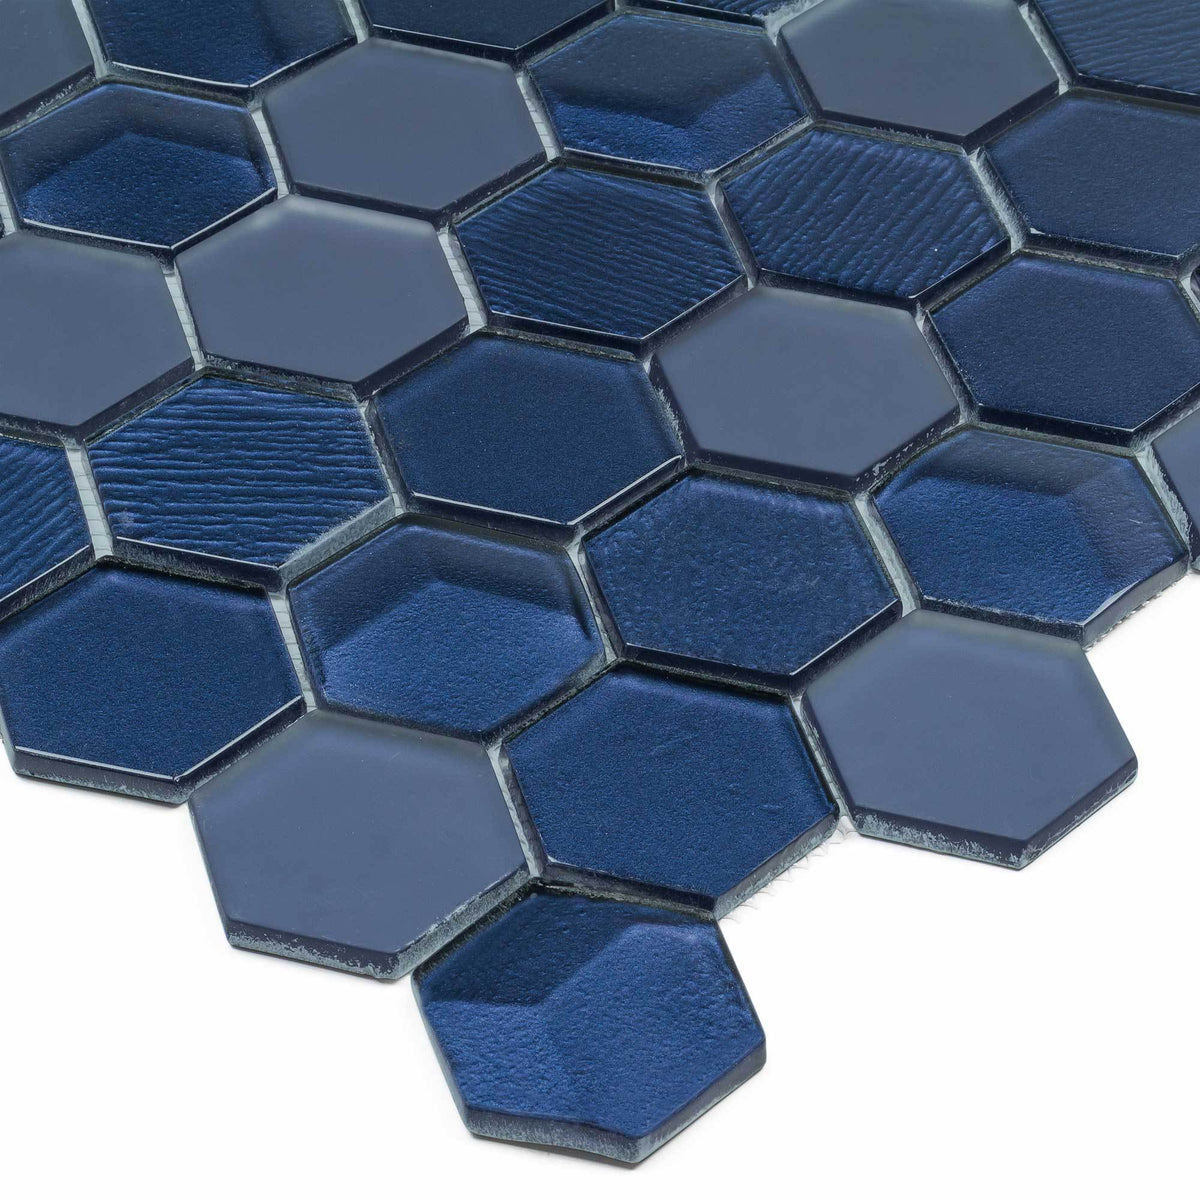 Hexagon Mosaic Bold Glossy Blue Metallic Glass Tile Mto0338